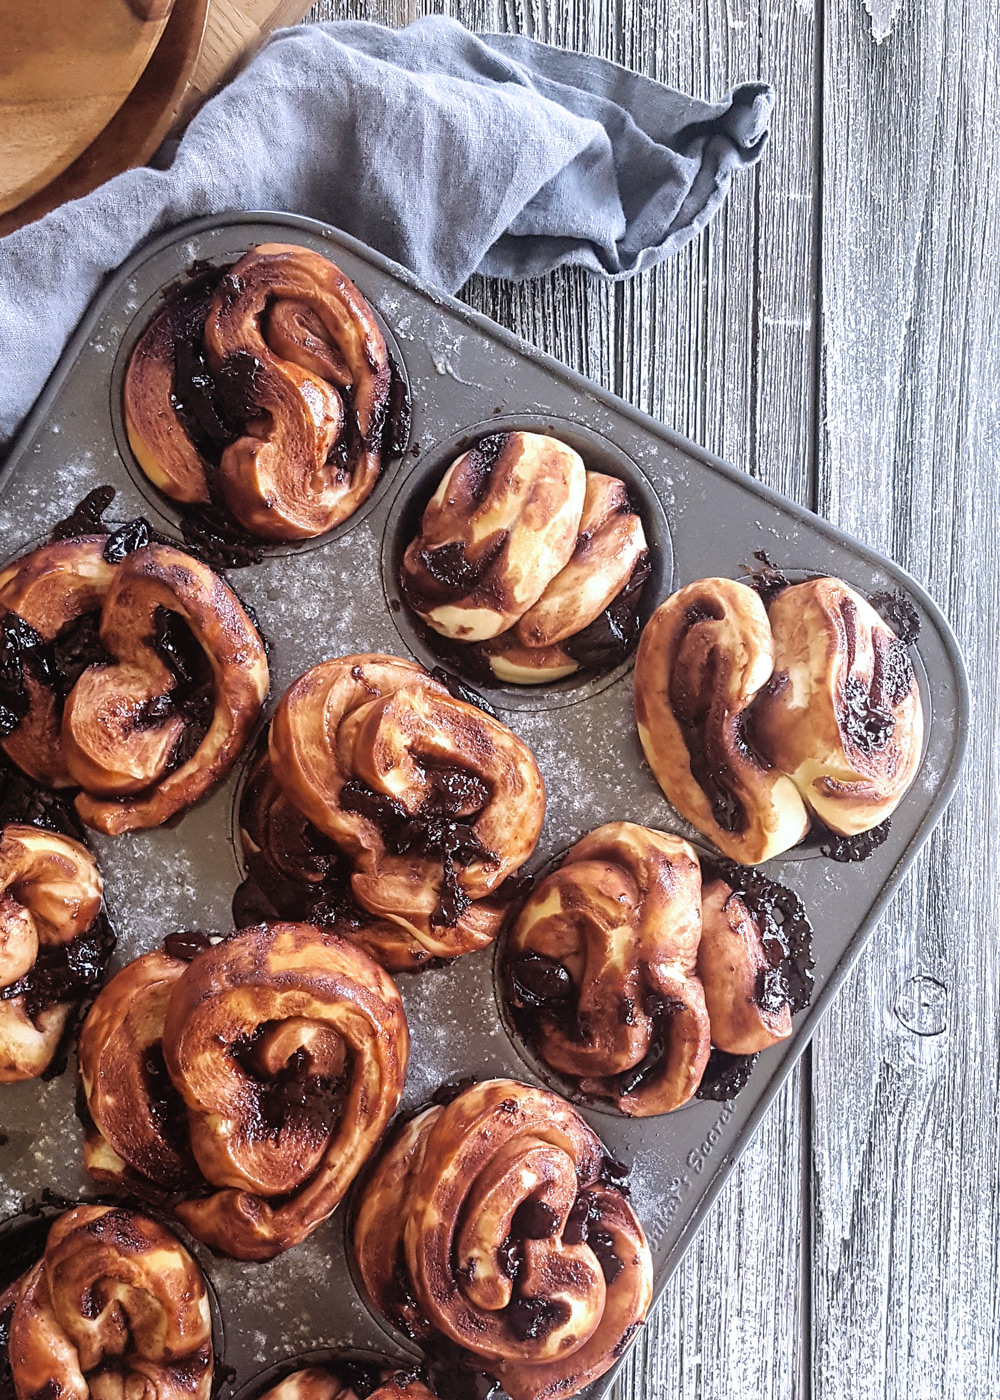 A tray of baked Cherry Chocolate Babka Pull Apart Muffins on a wooden background.